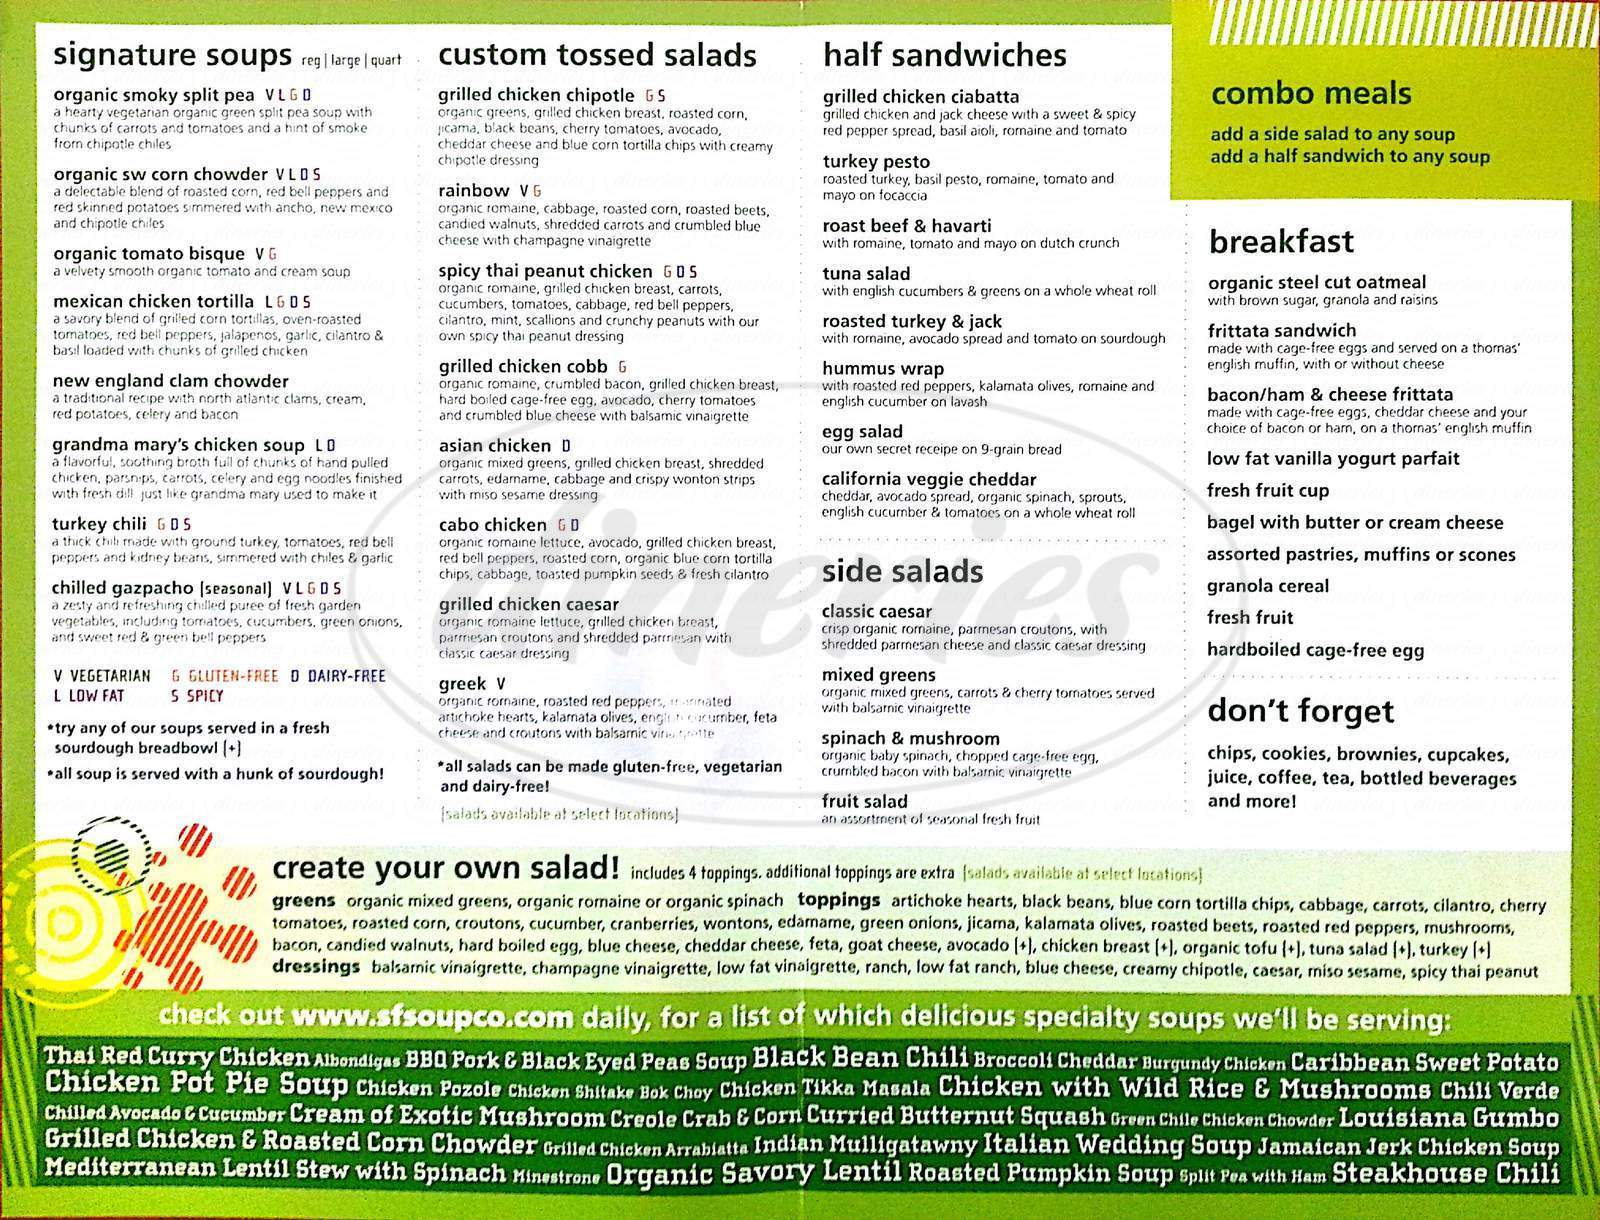 menu for San Francisco Soup Company